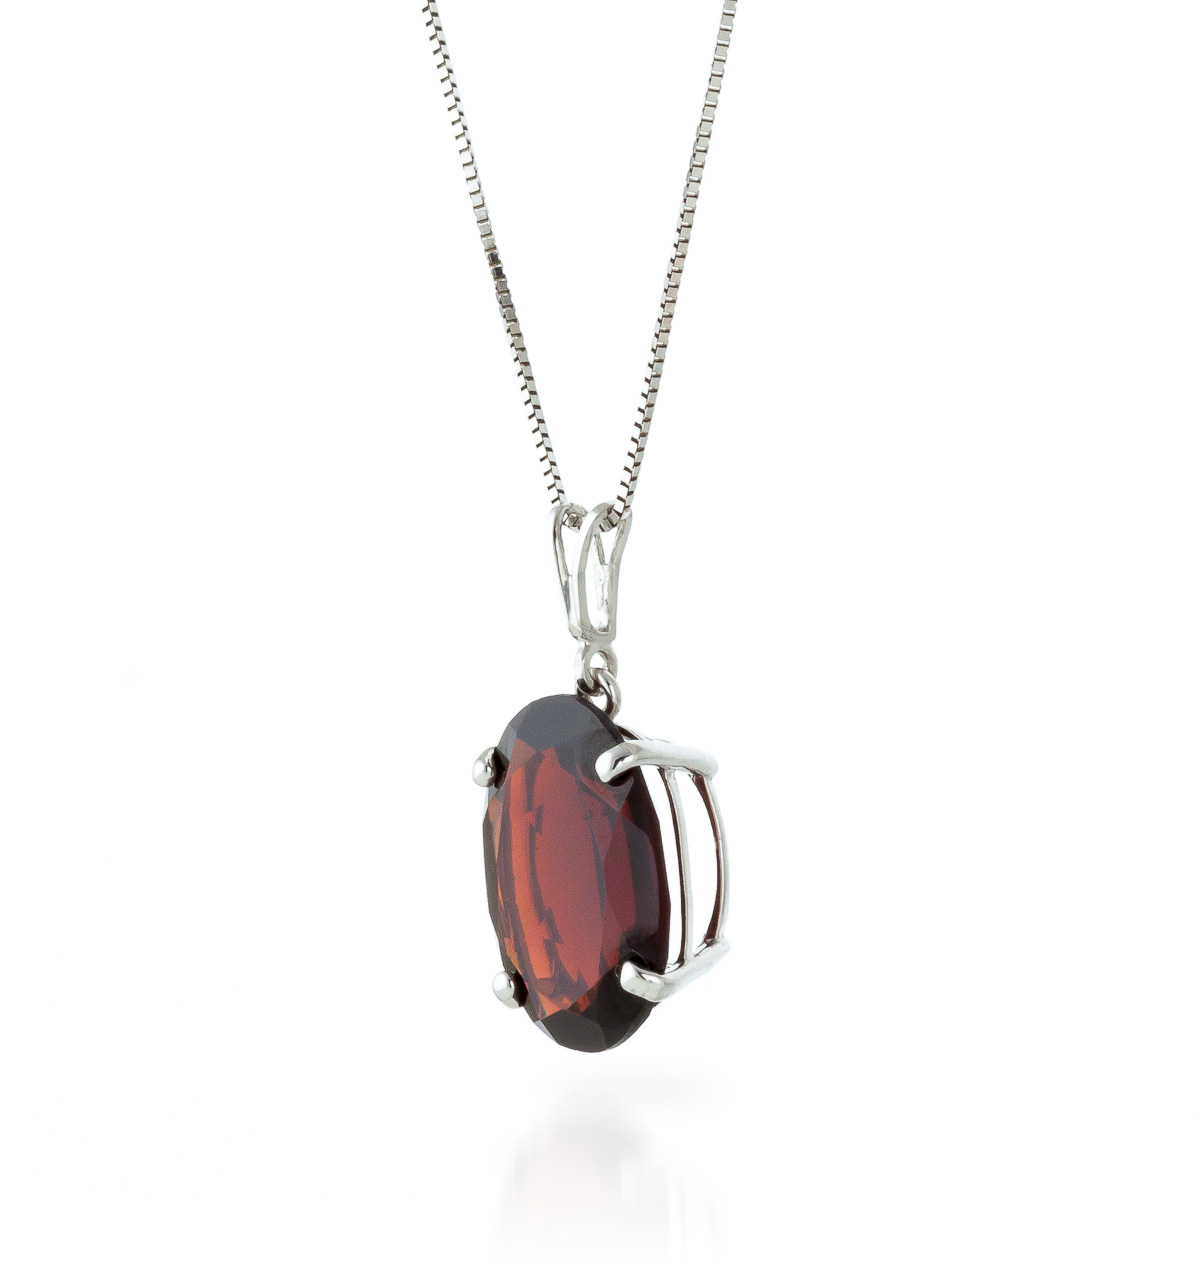 Oval Cut Garnet Pendant Necklace 6.0ct in 14K White Gold